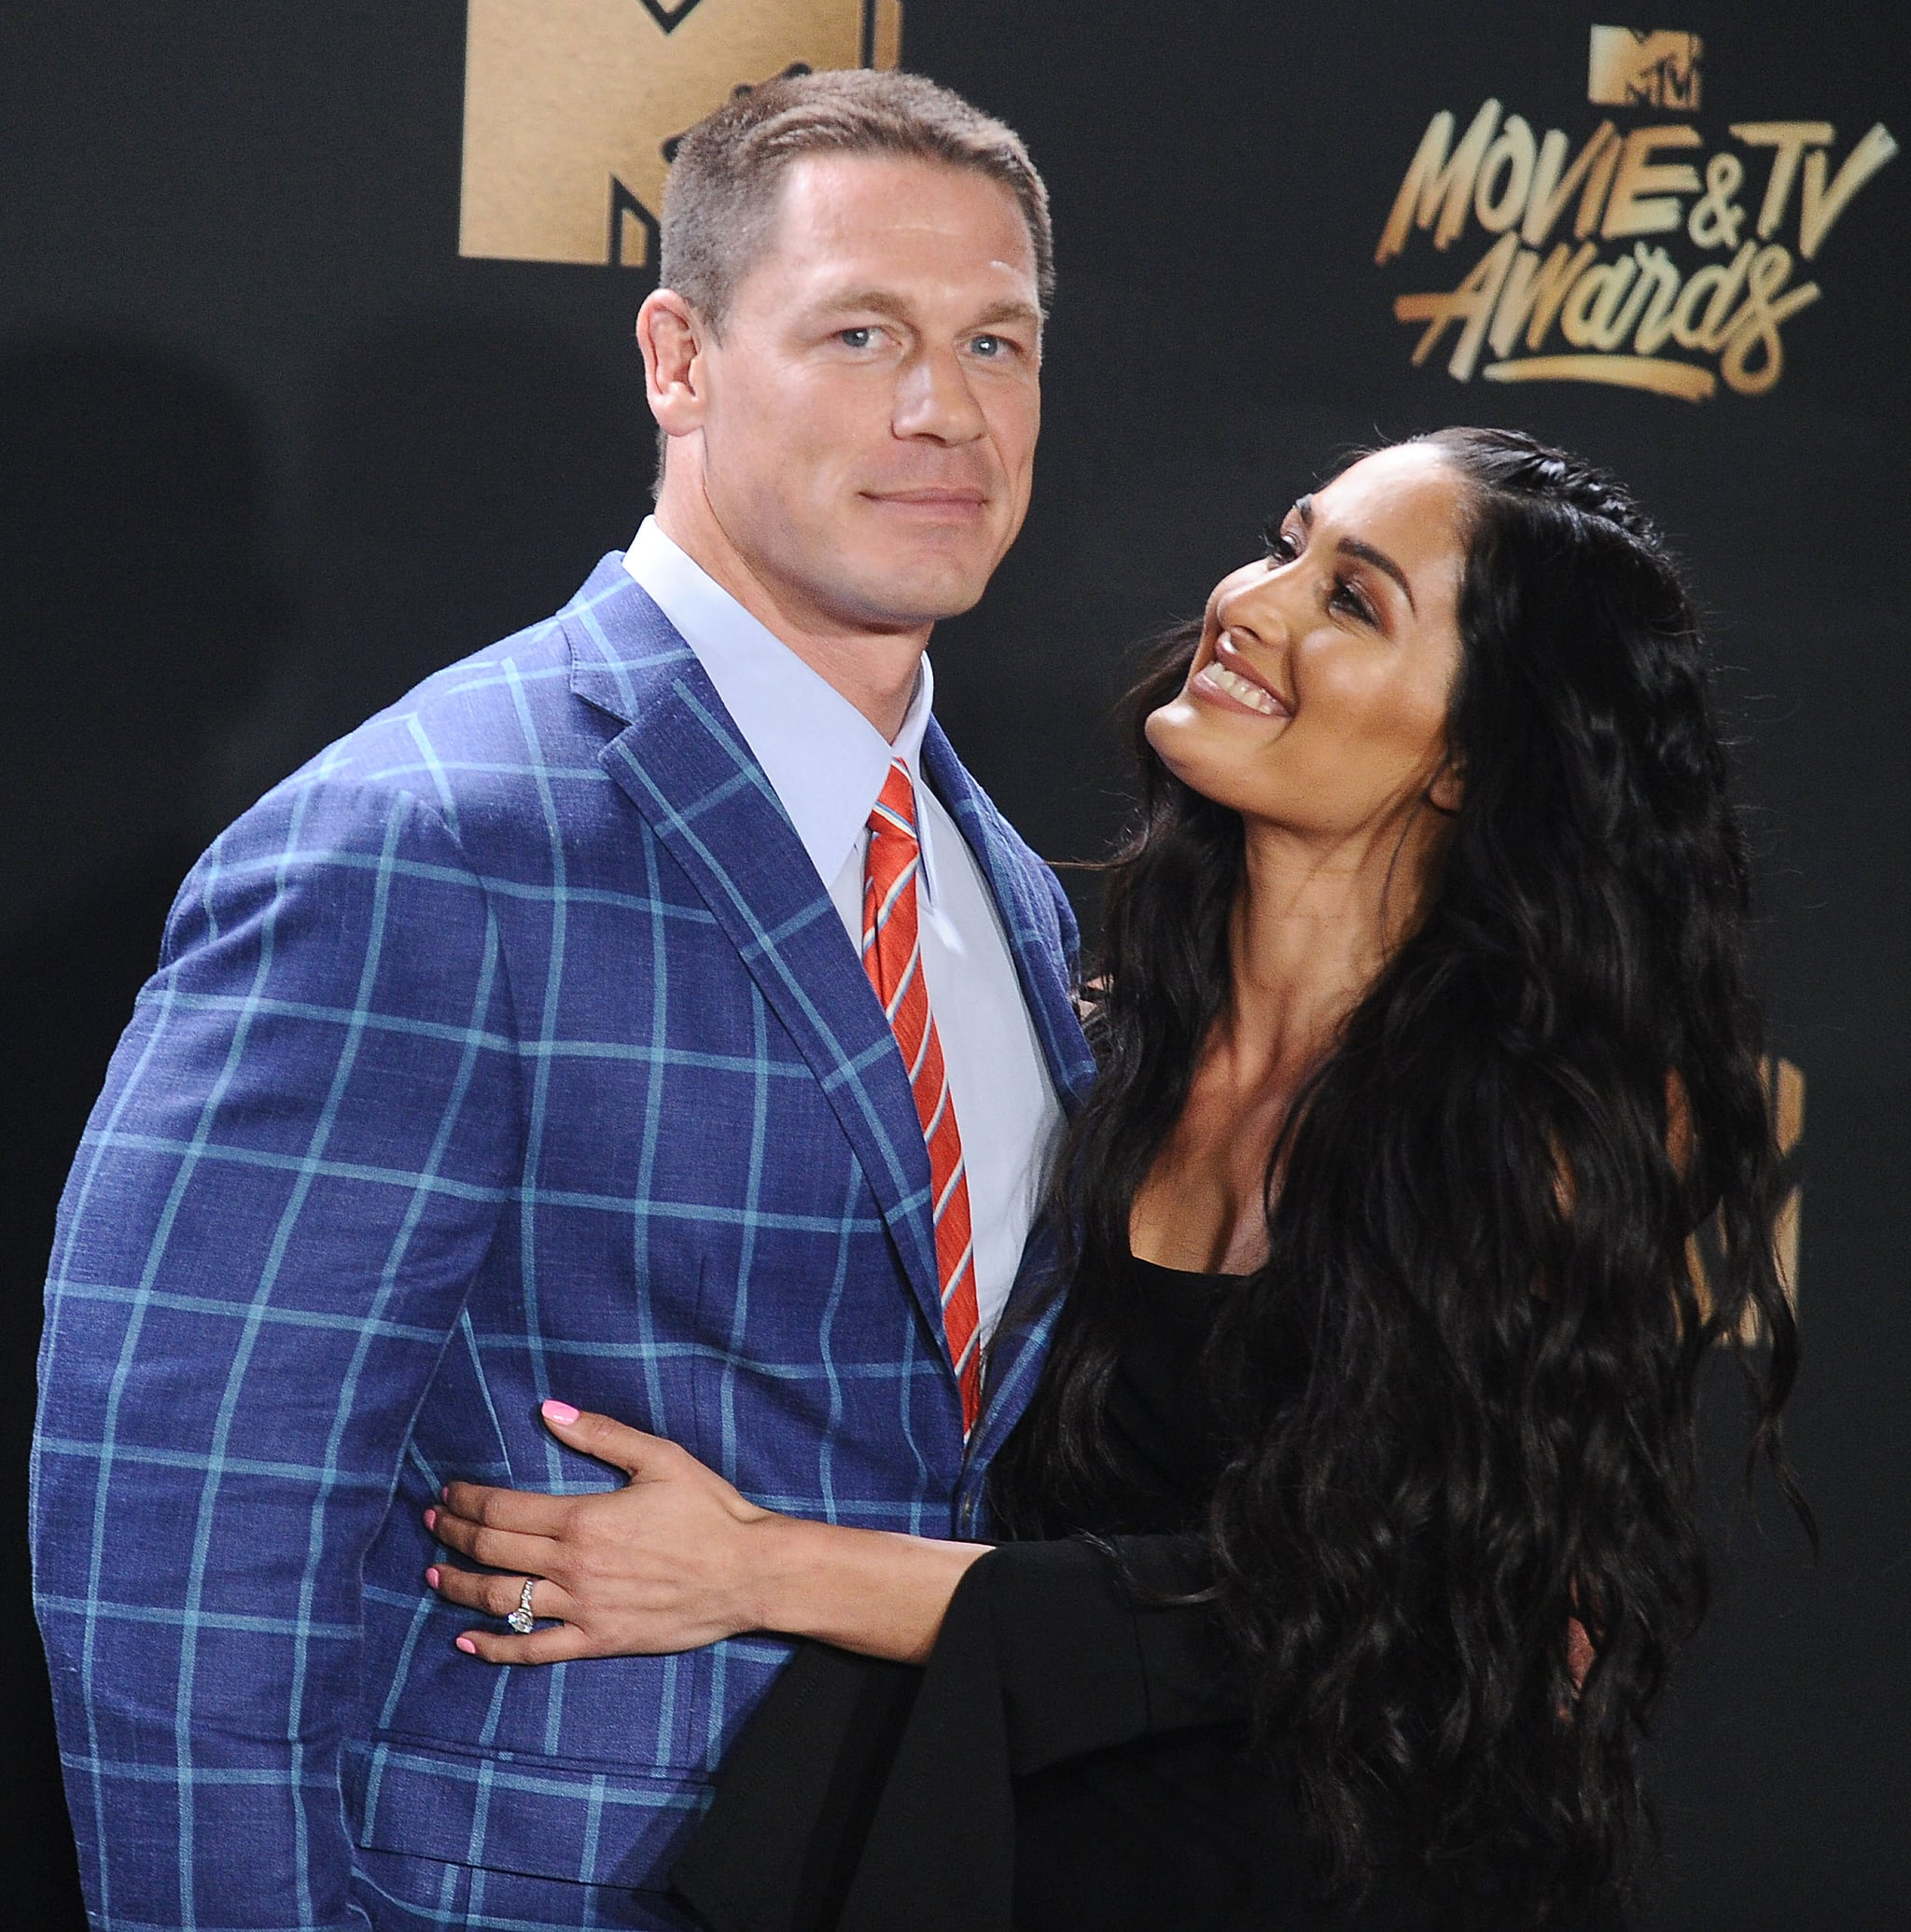 LOS ANGELES, CA - MAY 07:  John Cena and Nikki Bella pose in the press room at the 2017 MTV Movie and TV Awards at The Shrine Auditorium on May 7, 2017 in Los Angeles, California.  (Photo by Jason LaVeris/FilmMagic)